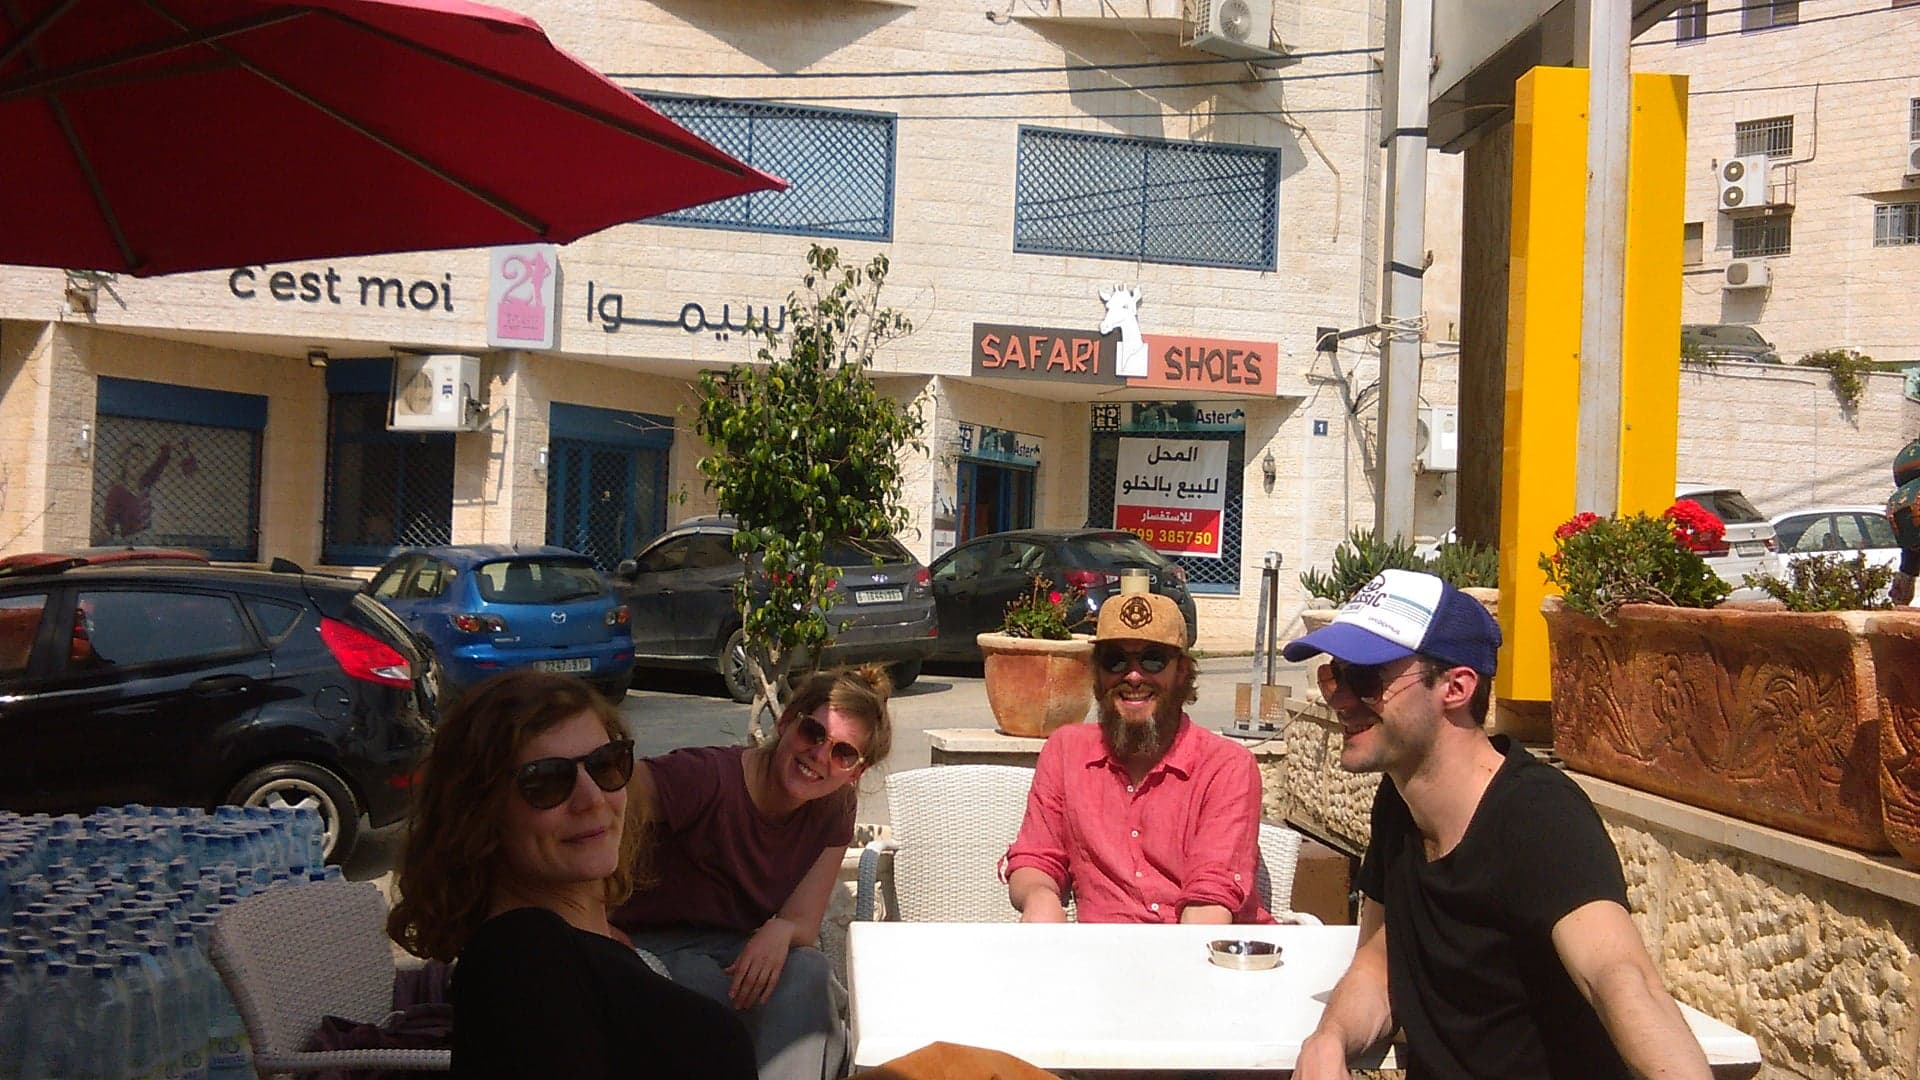 Elite cafe near ashtar theatre - actors of Two lady bugs.jpg